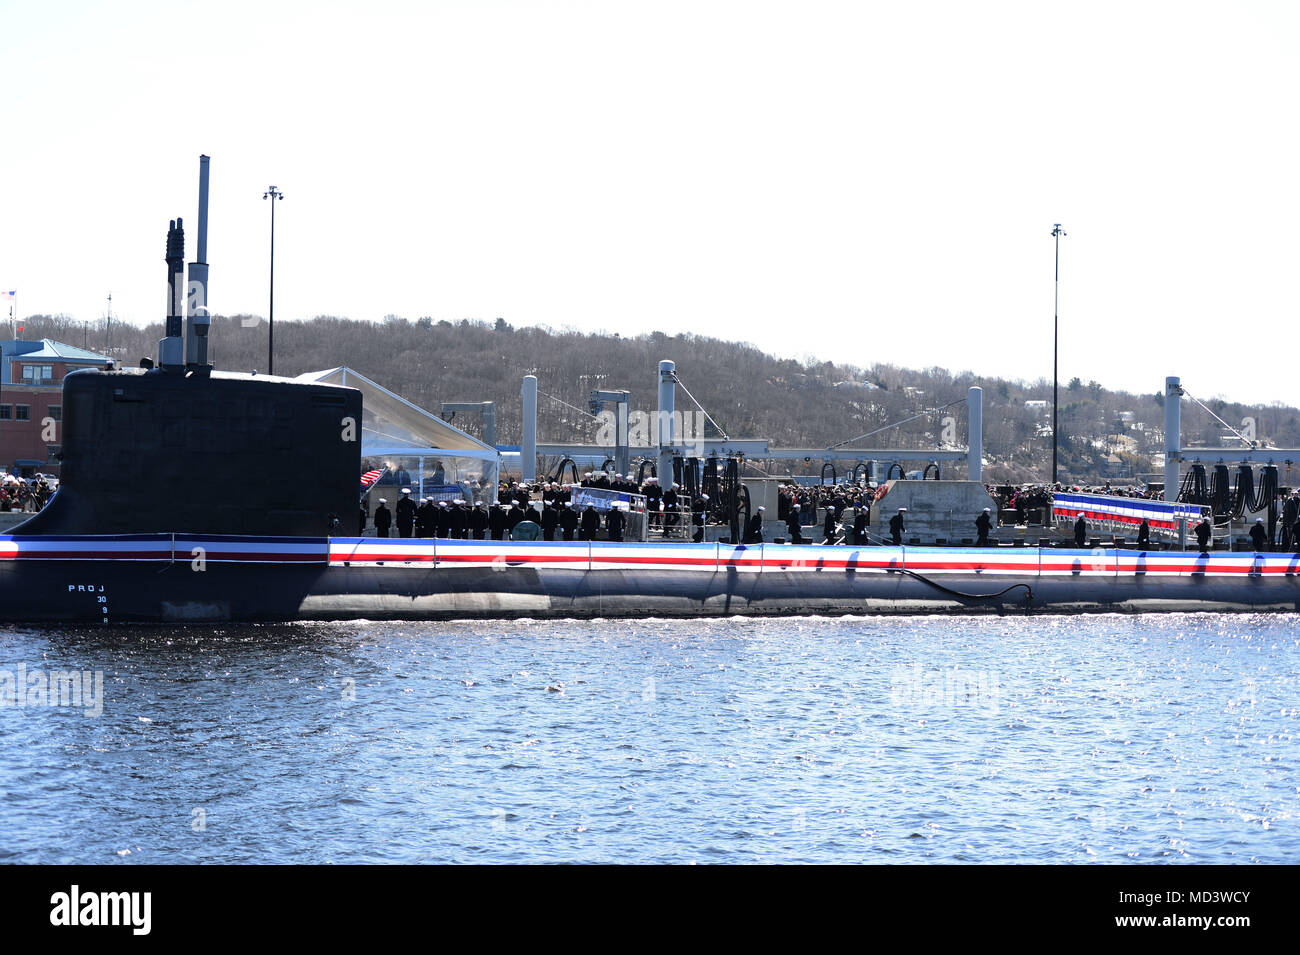 180317-N-LW591-017 GROTON, Conn. (Mar. 17, 2018) Annie Mabus announces 'Bring the Ship to Life' spurring its crew members to race across the brow and fall in formation aboard USS Colorado (SSN 788) during the commissioning ceremony on Naval Submarine Base New London, Mar. 17. USS Colorado is the U.S. Navy's 15th Virginia-Class attack submarine and the fourth ship named for the State of Colorado. (U.S. Navy photo by Mass Communication Specialist 1st Class Steven Hoskins/Released) - Stock Image